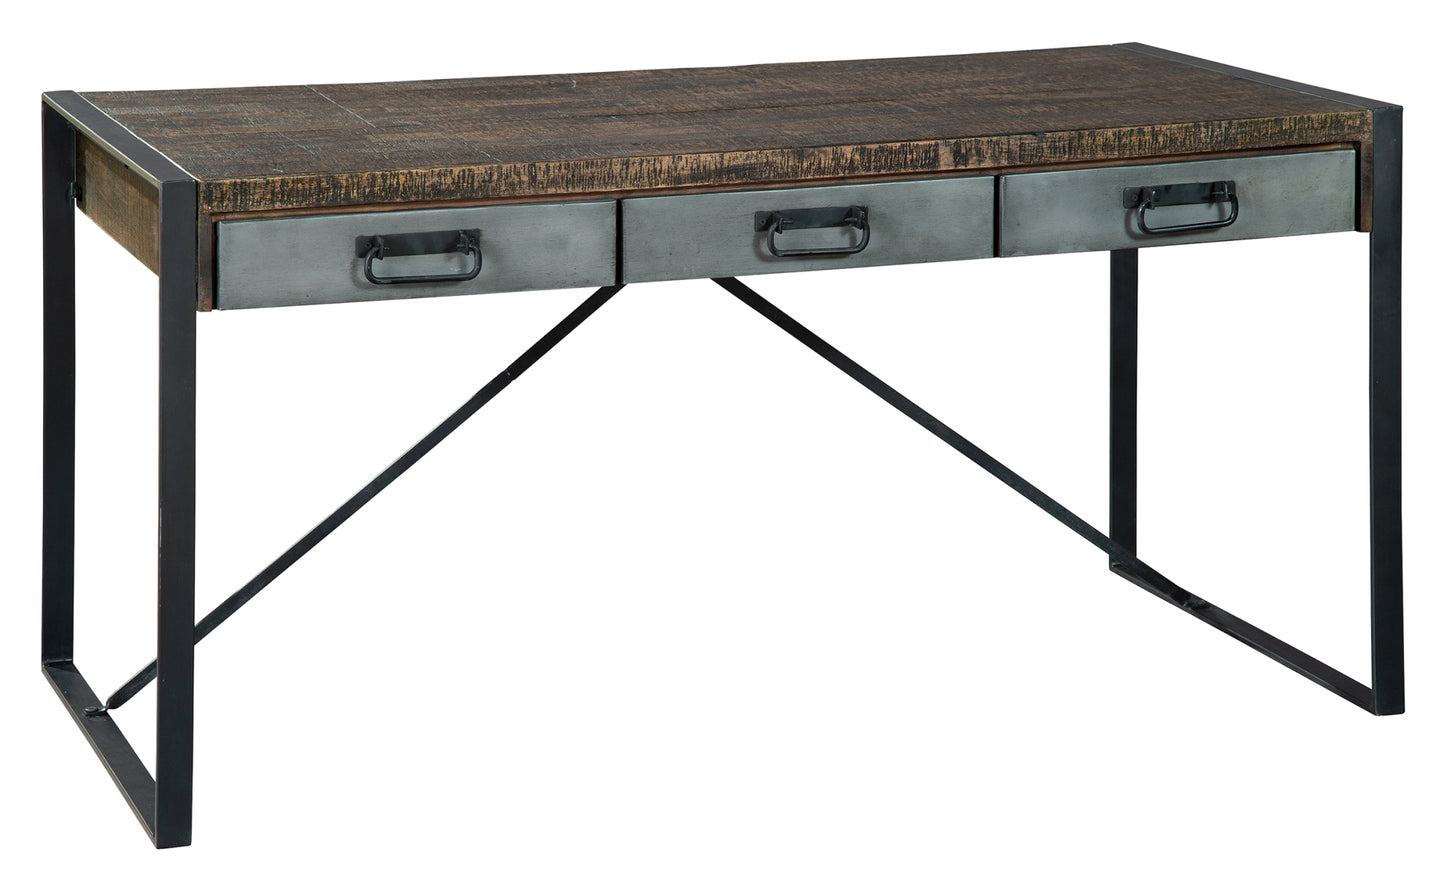 Hekman Office At Home Industrial Desk 28053 - Curios And More